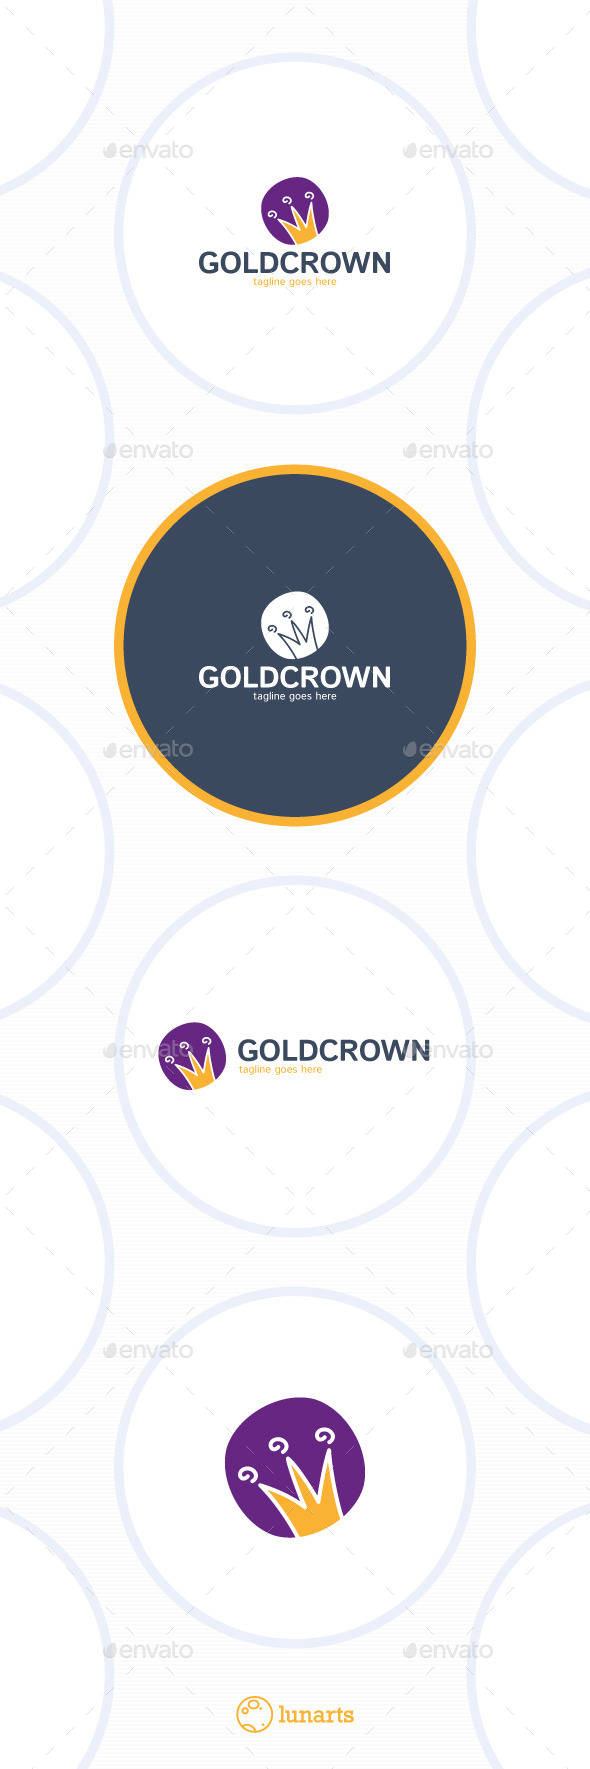 Gold Crown Logo - Cartoon - Symbols Logo Templates